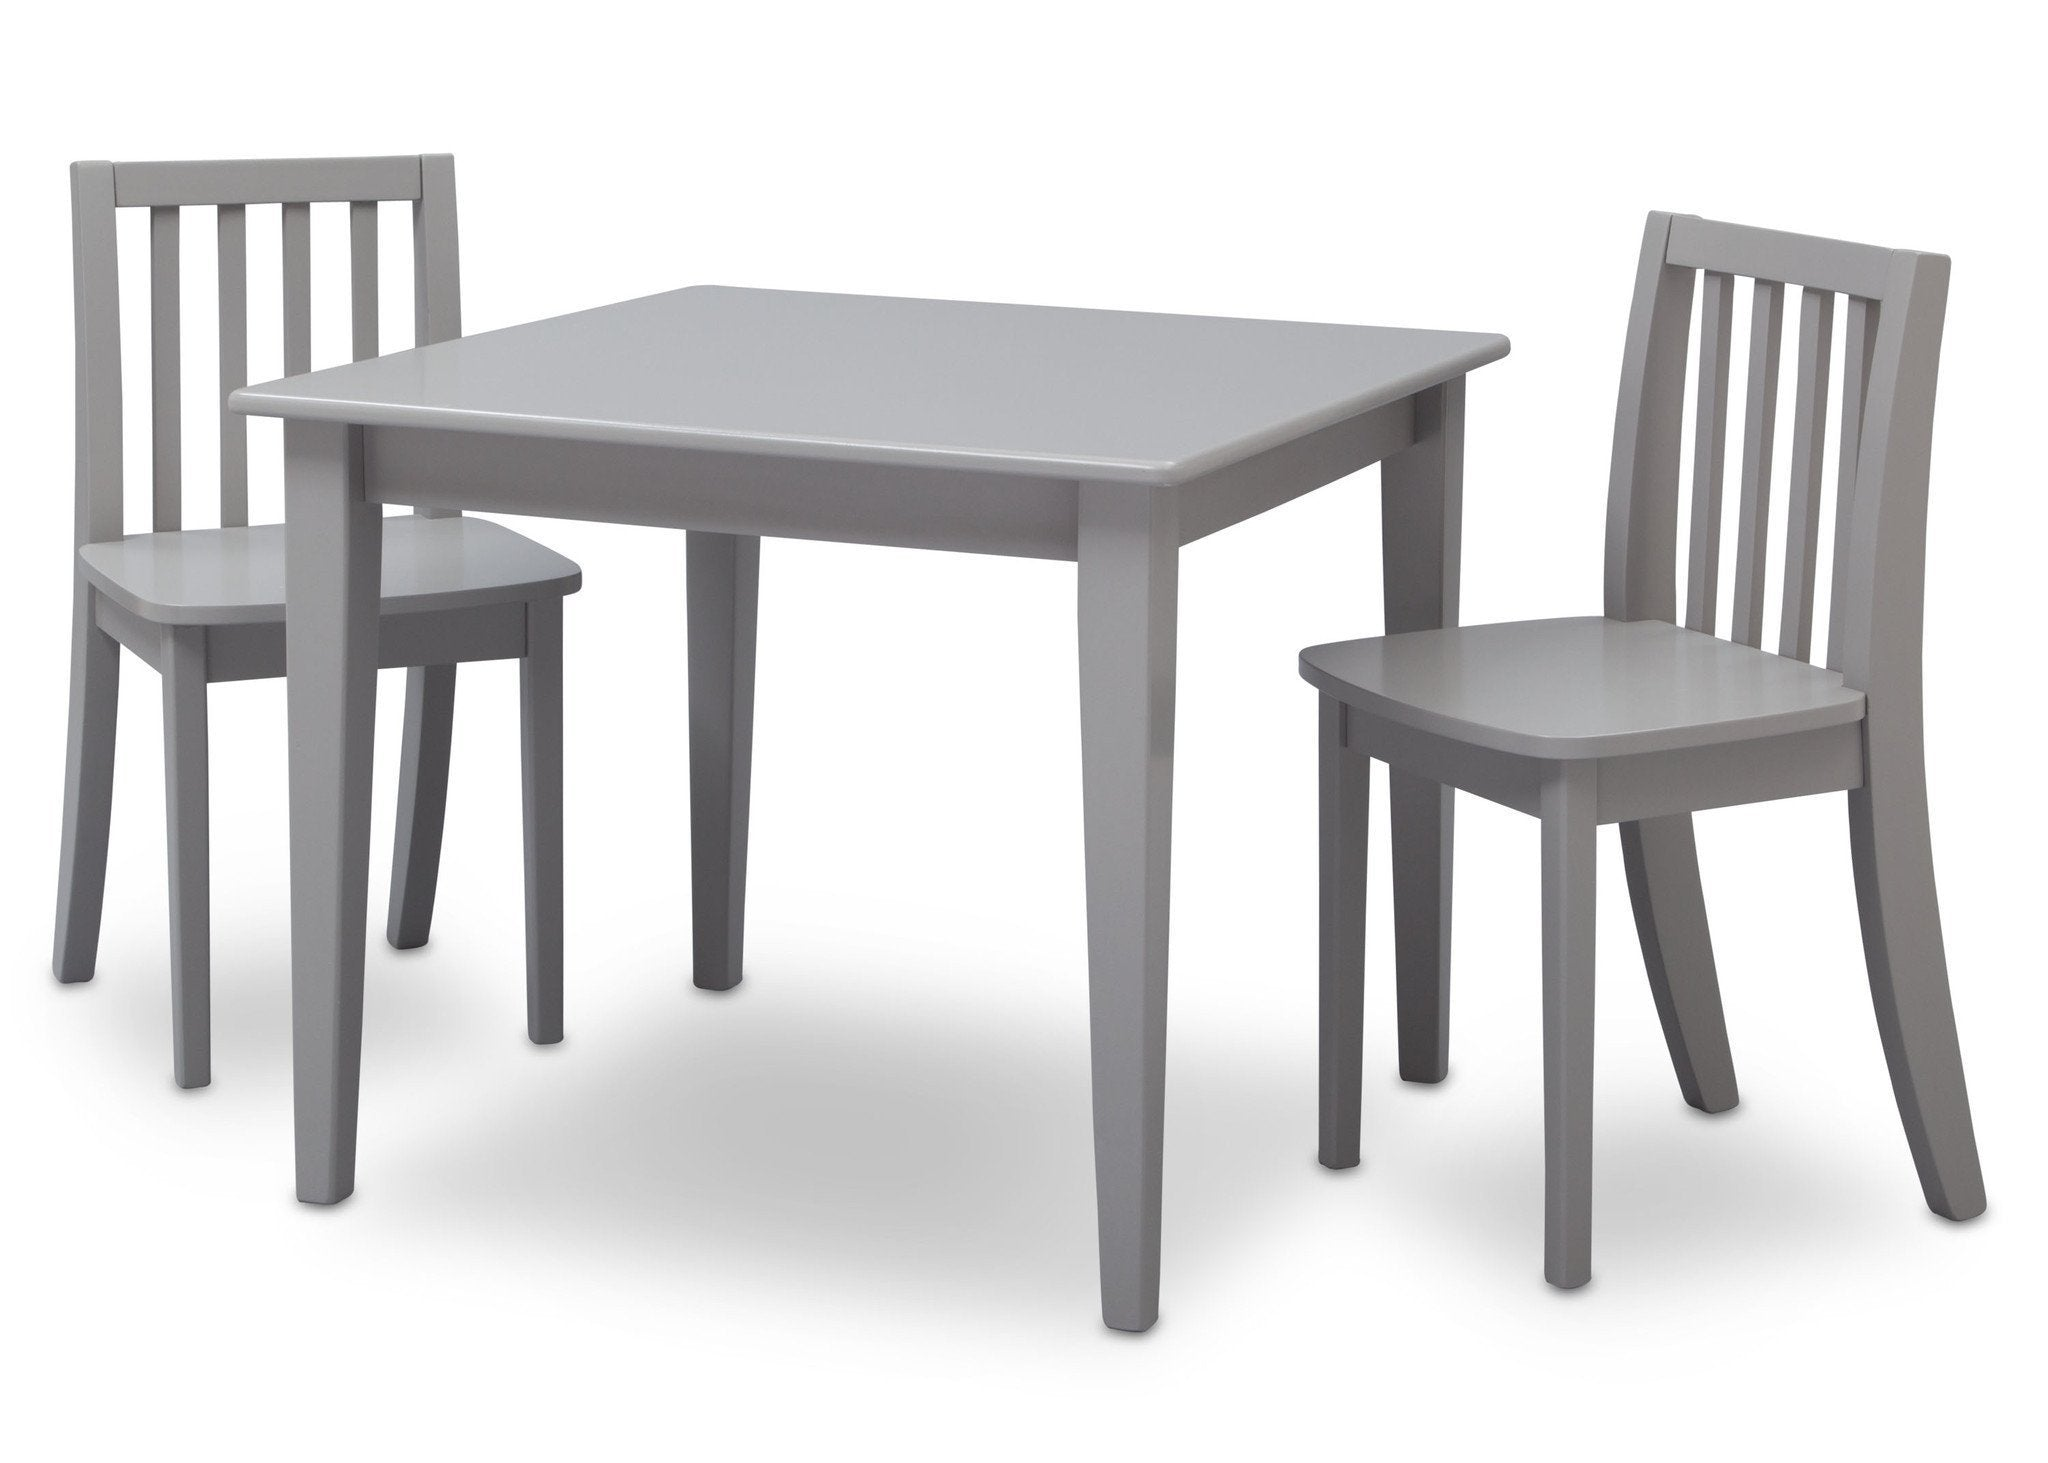 Next Step Table and Chairs | Delta Children